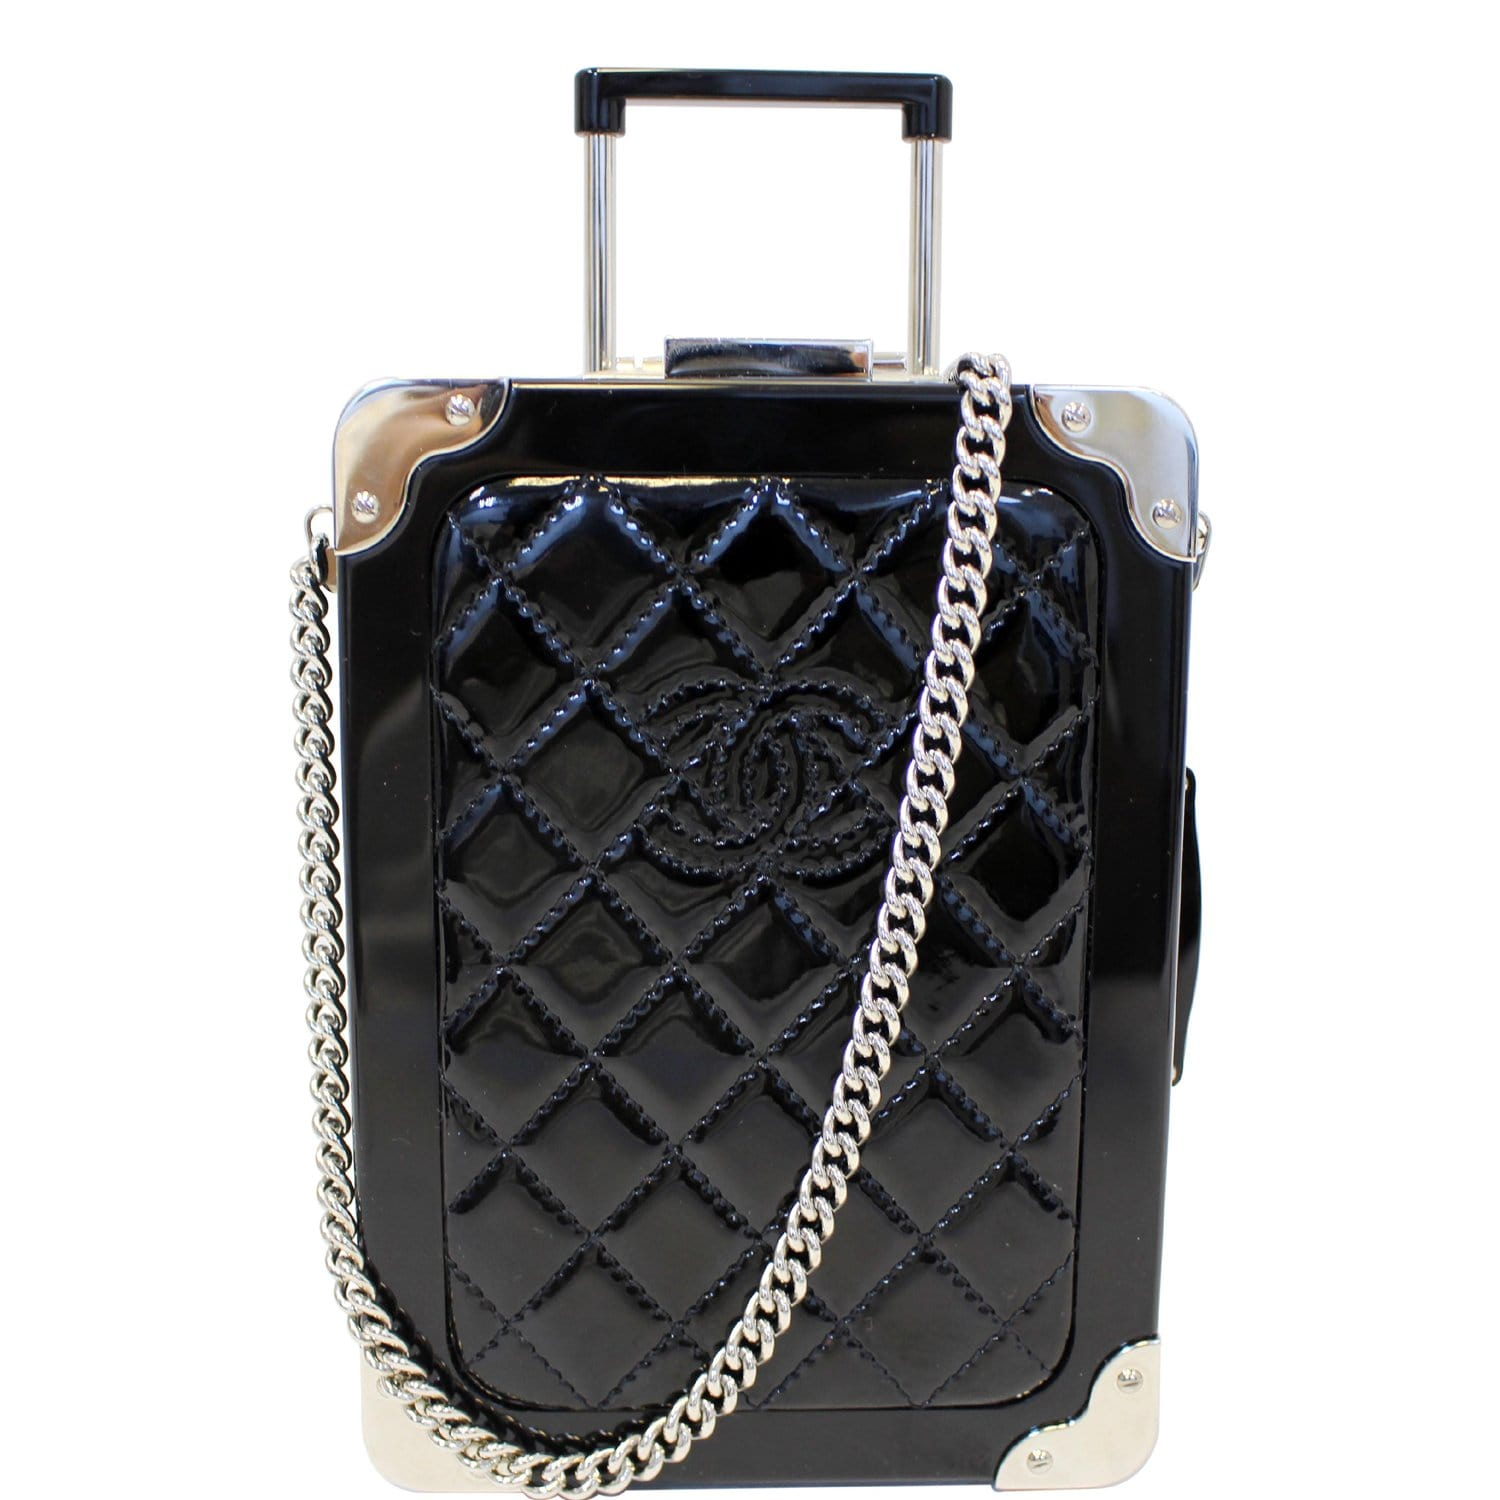 5c9dd8a65 CHANEL Evening In The Air Mini Trolley Minaudiere Crossbody Bag Black